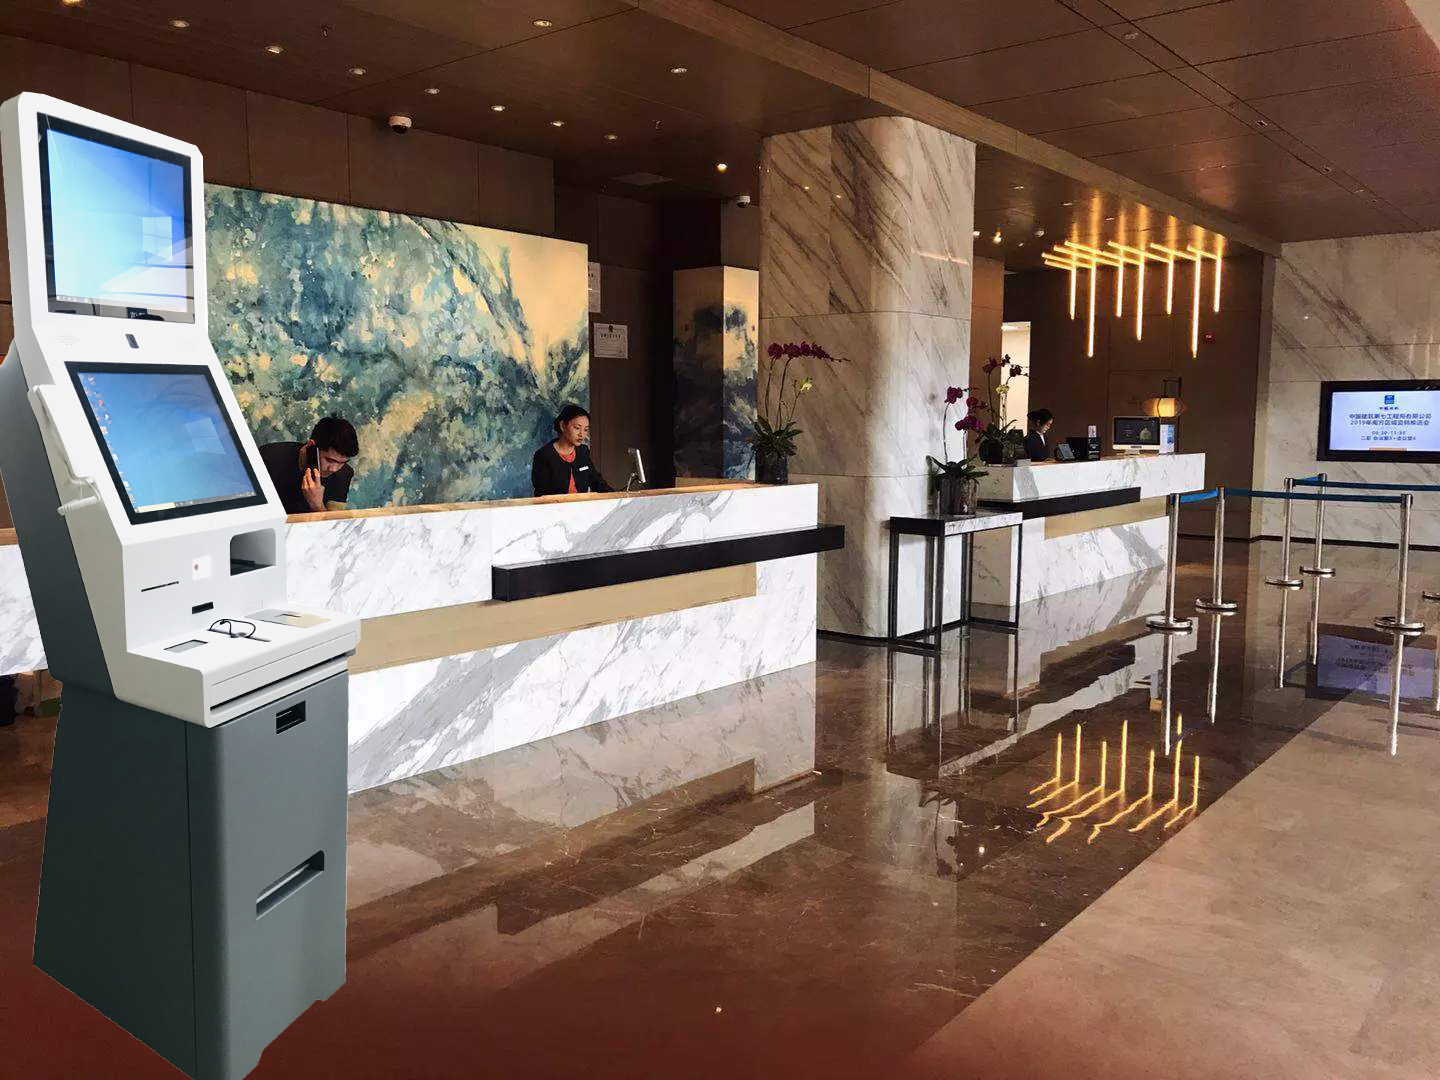 Self service check-out kiosk in hotel with printer function from Shenzhen supplier